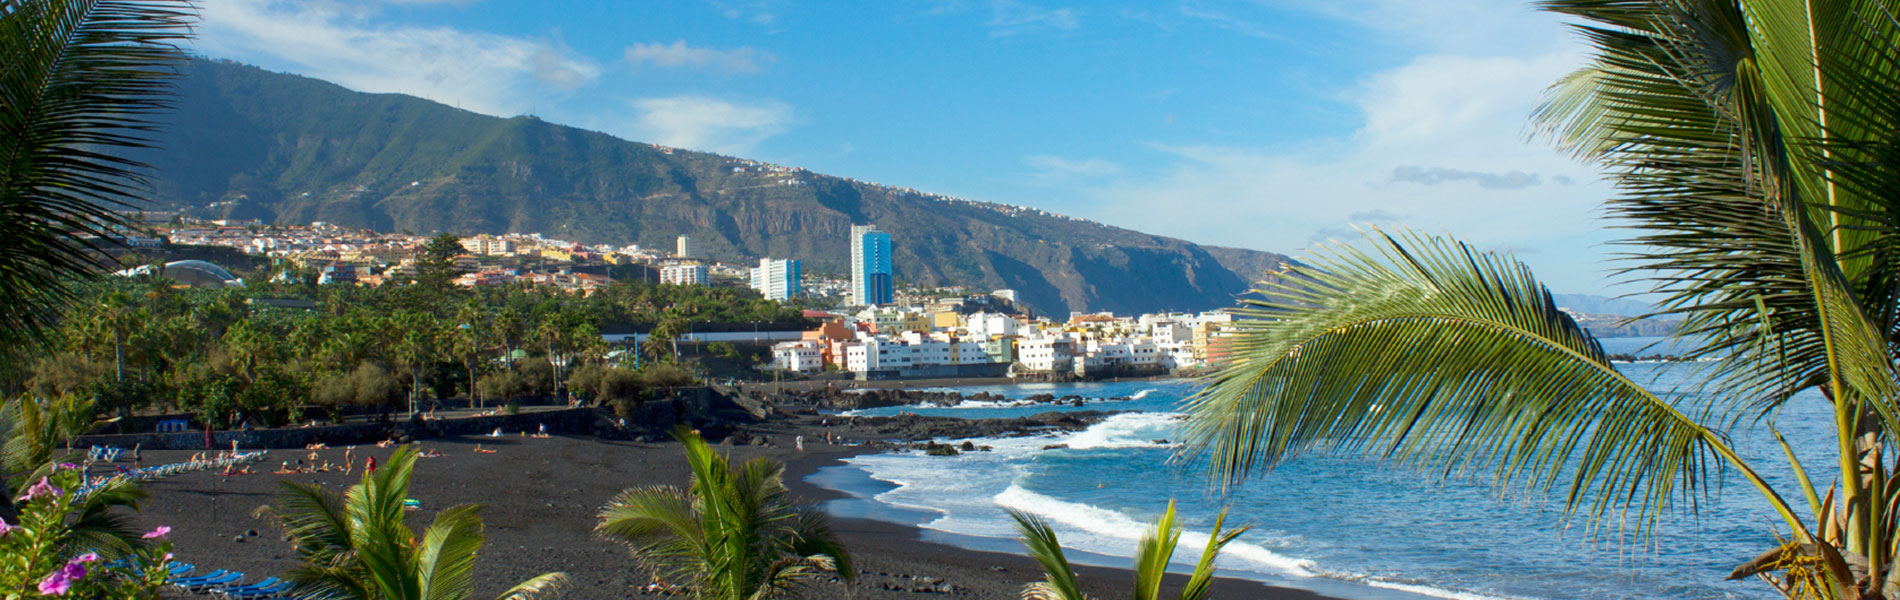 Tropical Tenerife